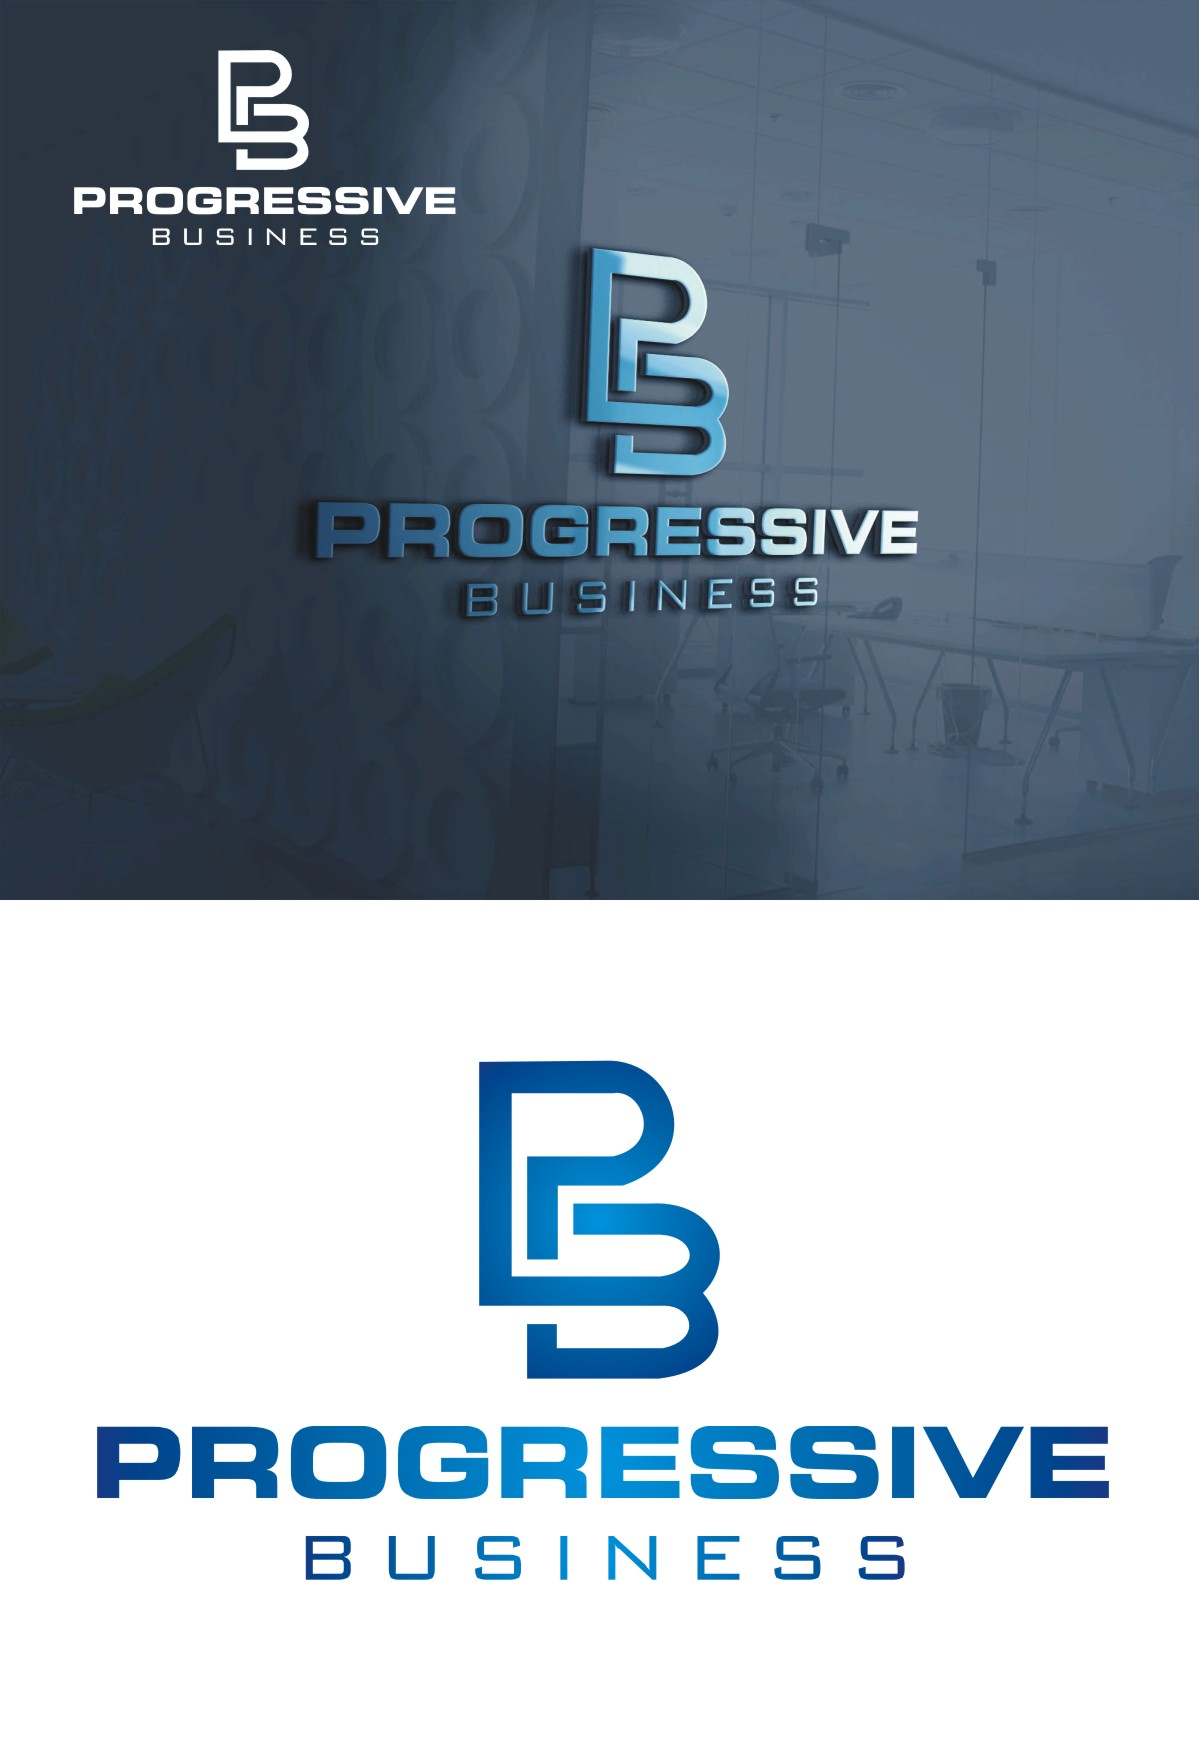 Logo Design by Spider Graphics - Entry No. 185 in the Logo Design Contest Captivating Logo Design for Progressive Business.